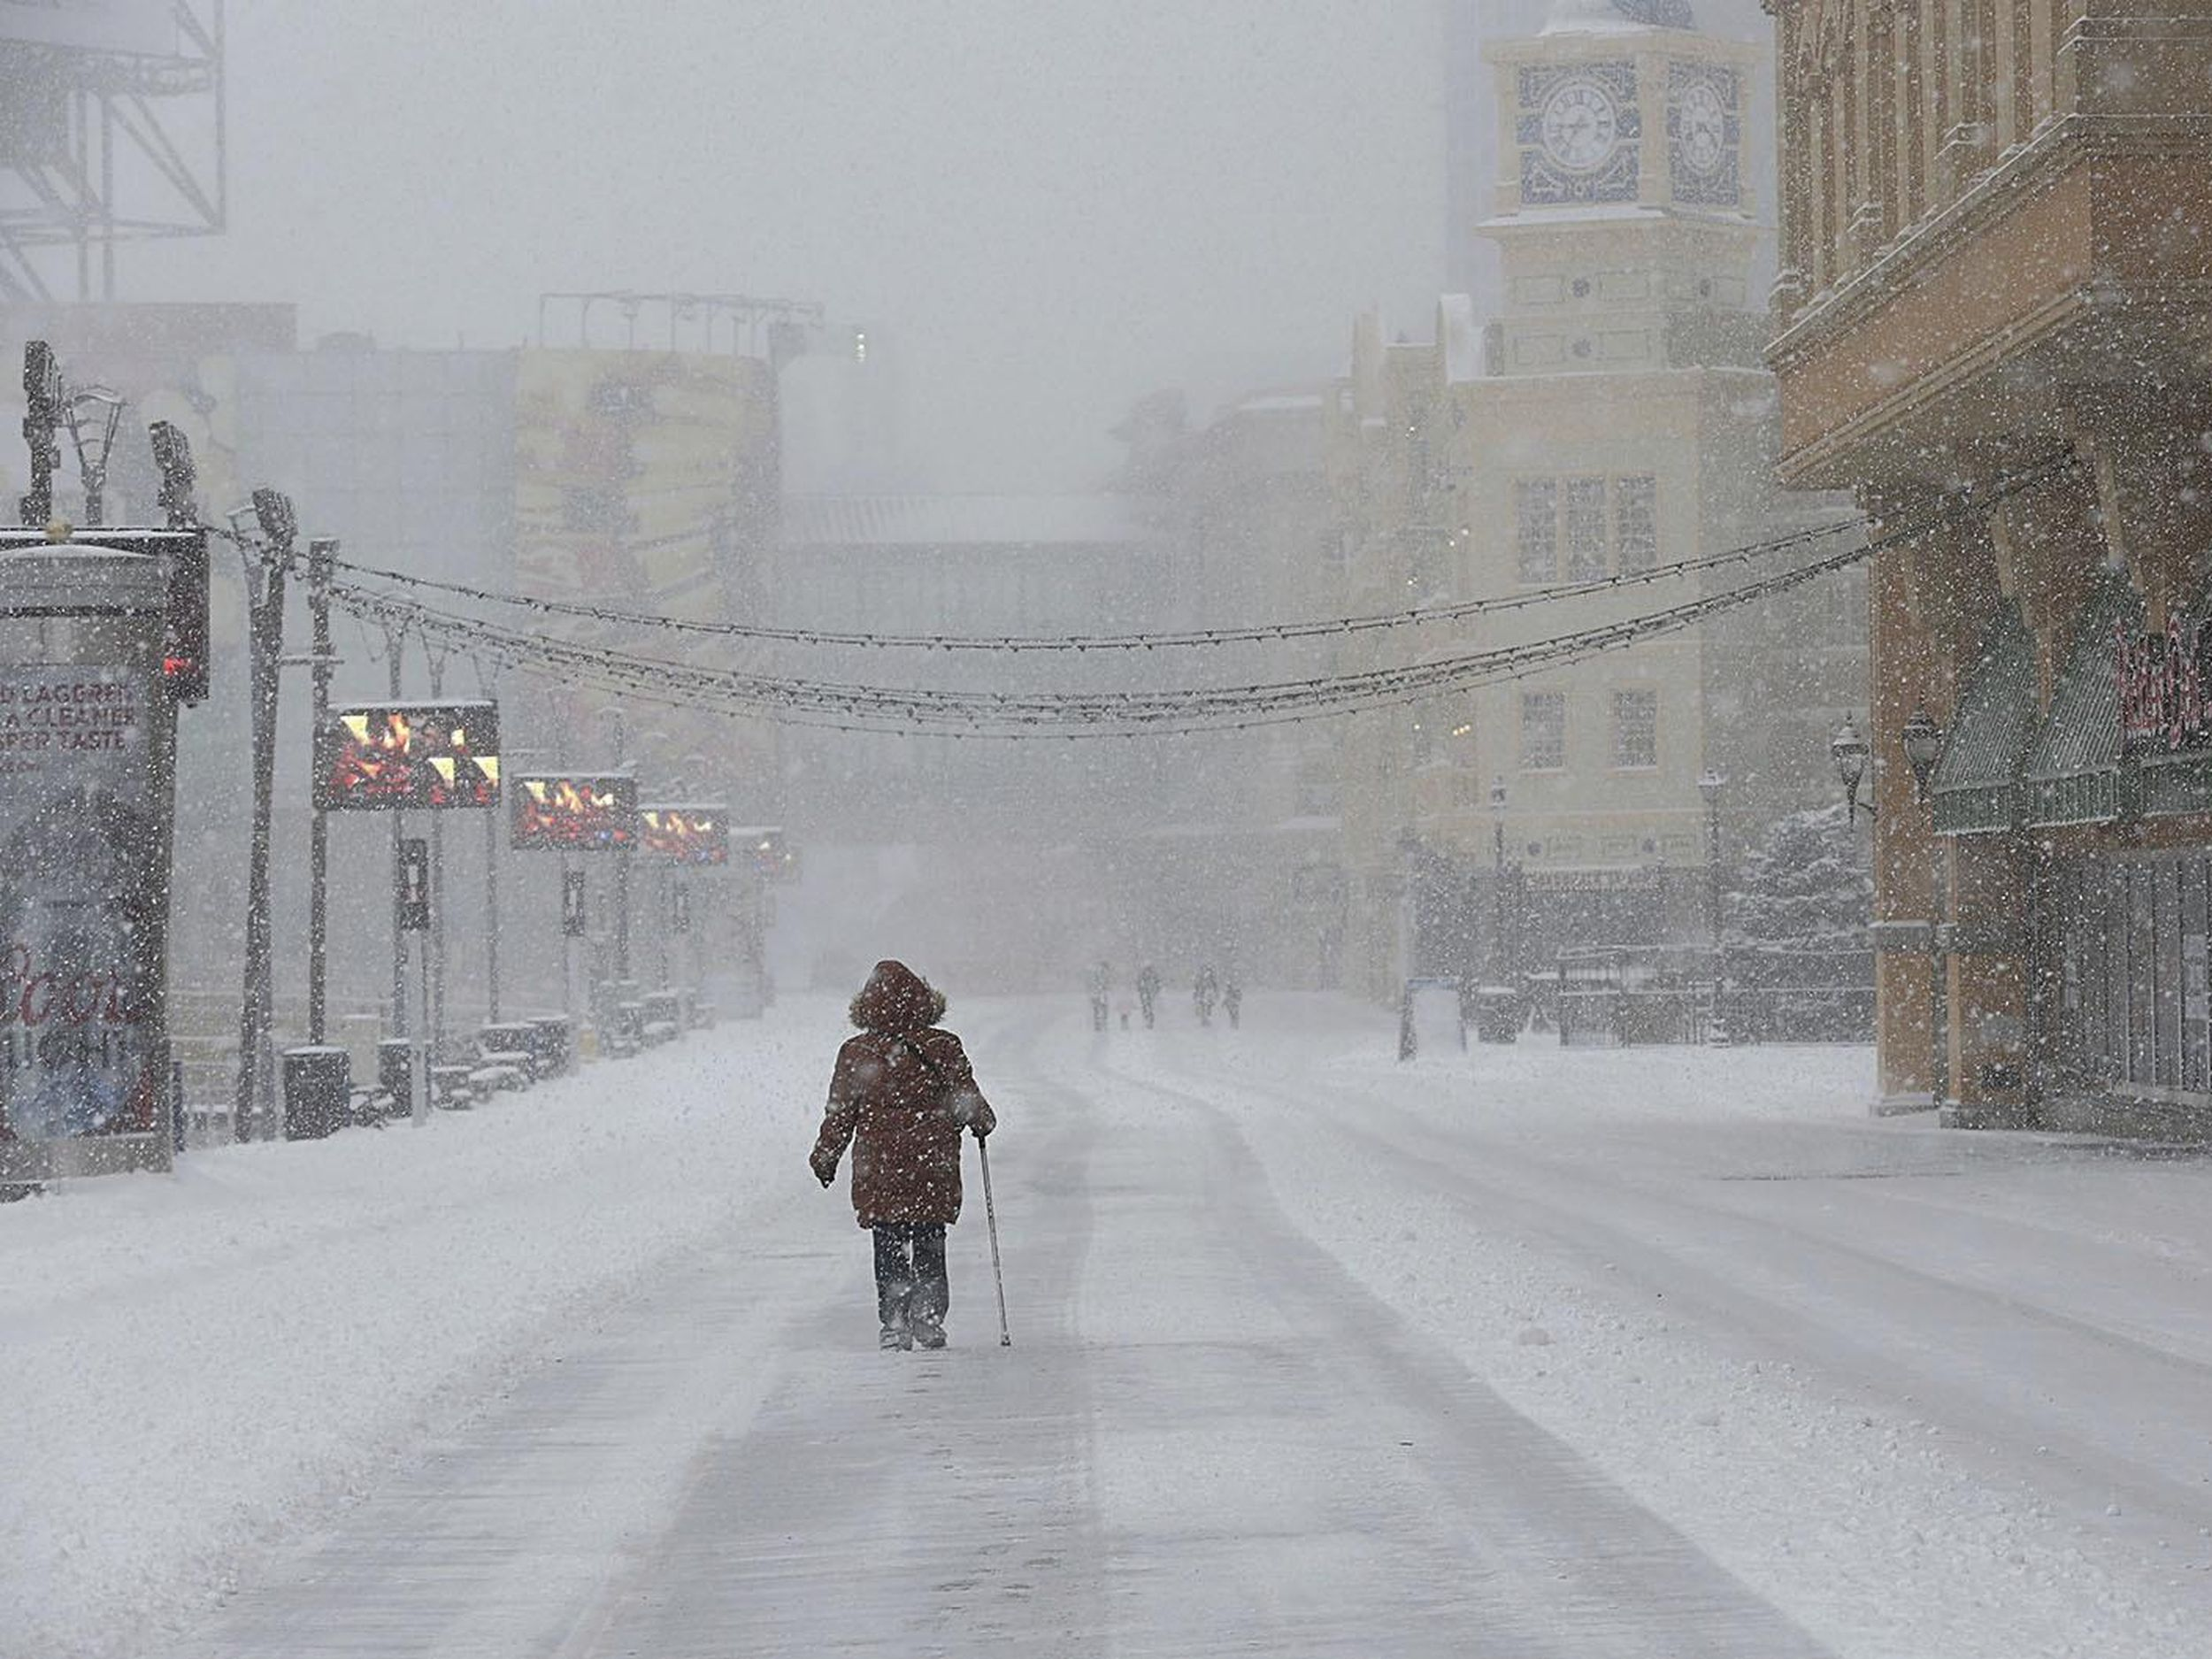 Snow Pounds Parts Of East Coast Spares Several Big Cities The Spokesman Review